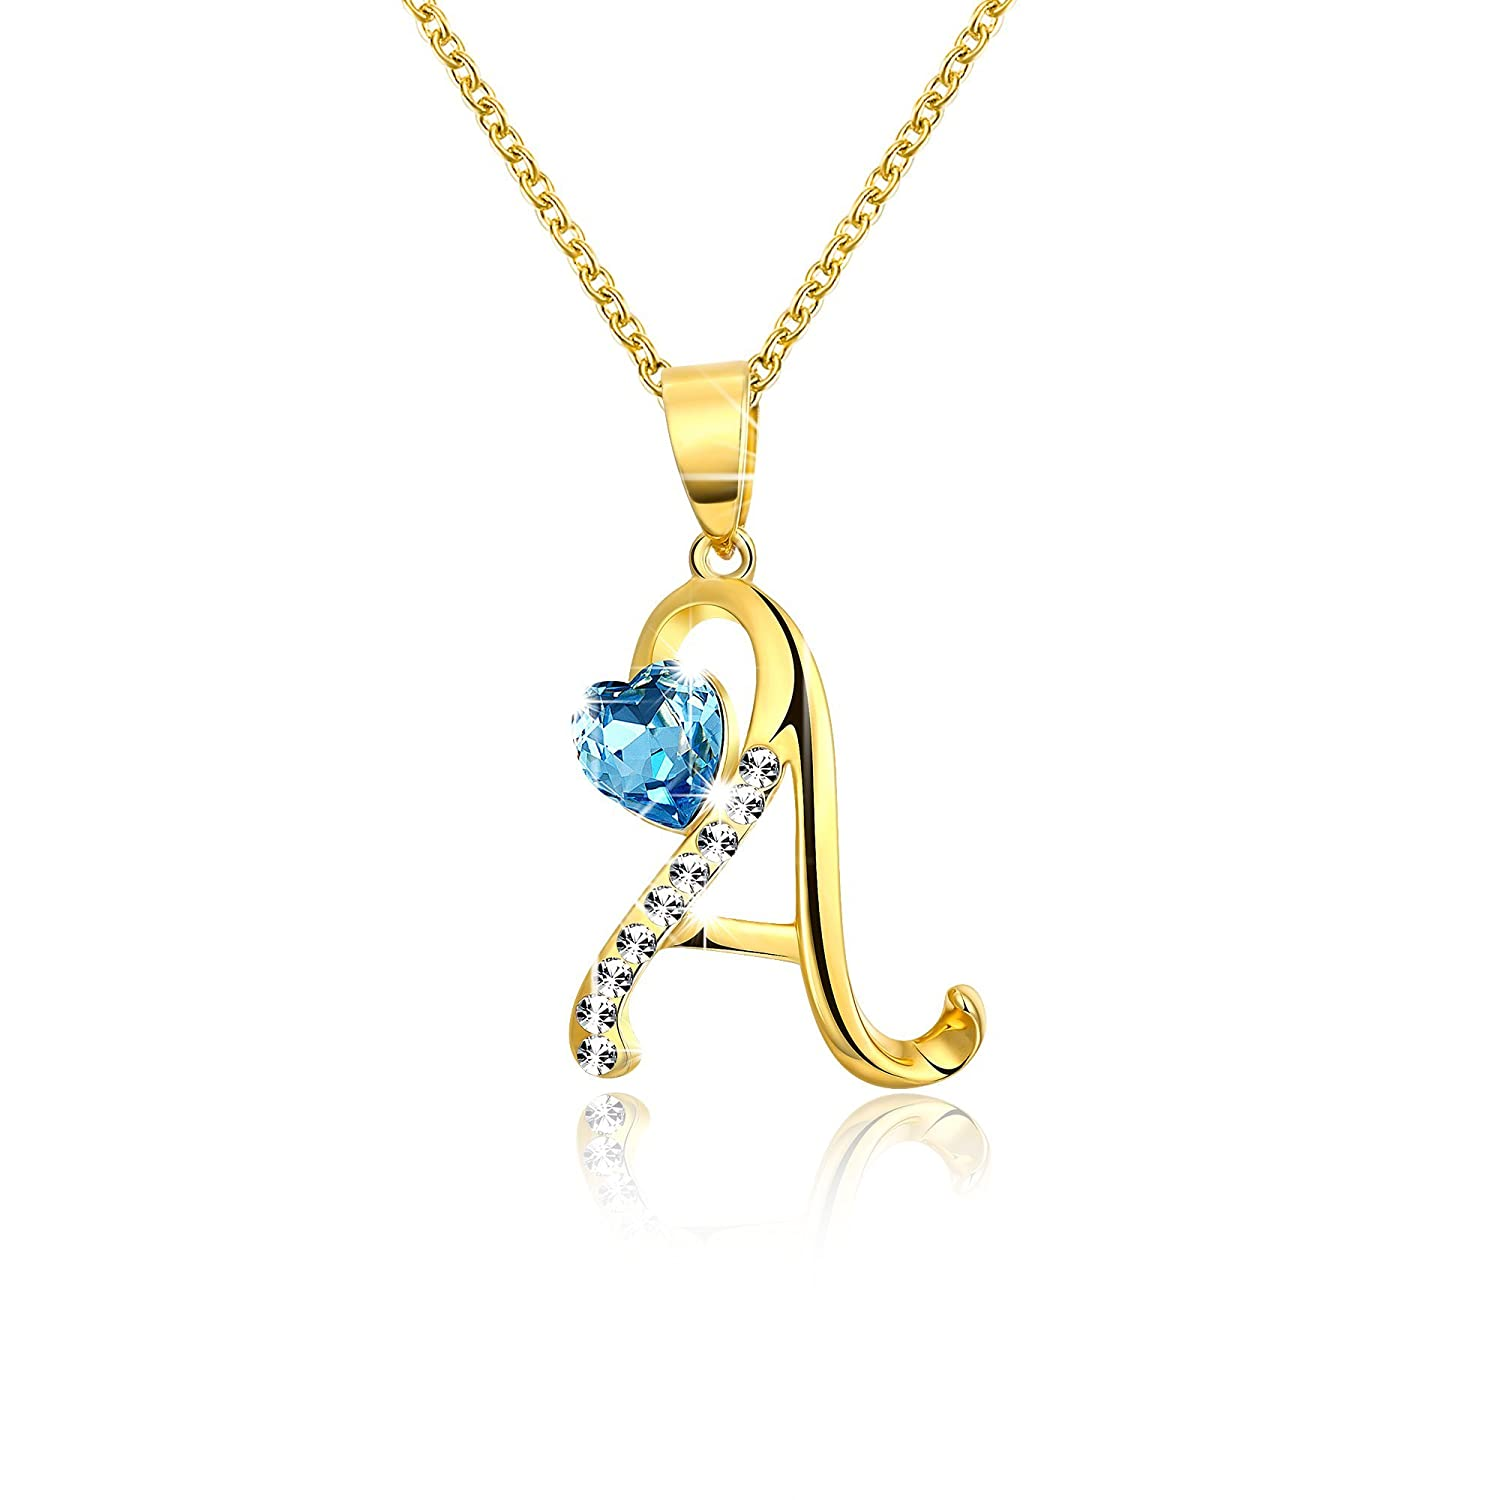 fa28975a31b8 Buy Yellow Chimes Crystals from Swarovski 22K Real Gold Plated Alphabet  Pendant for Women and Girls Online at Low Prices in India